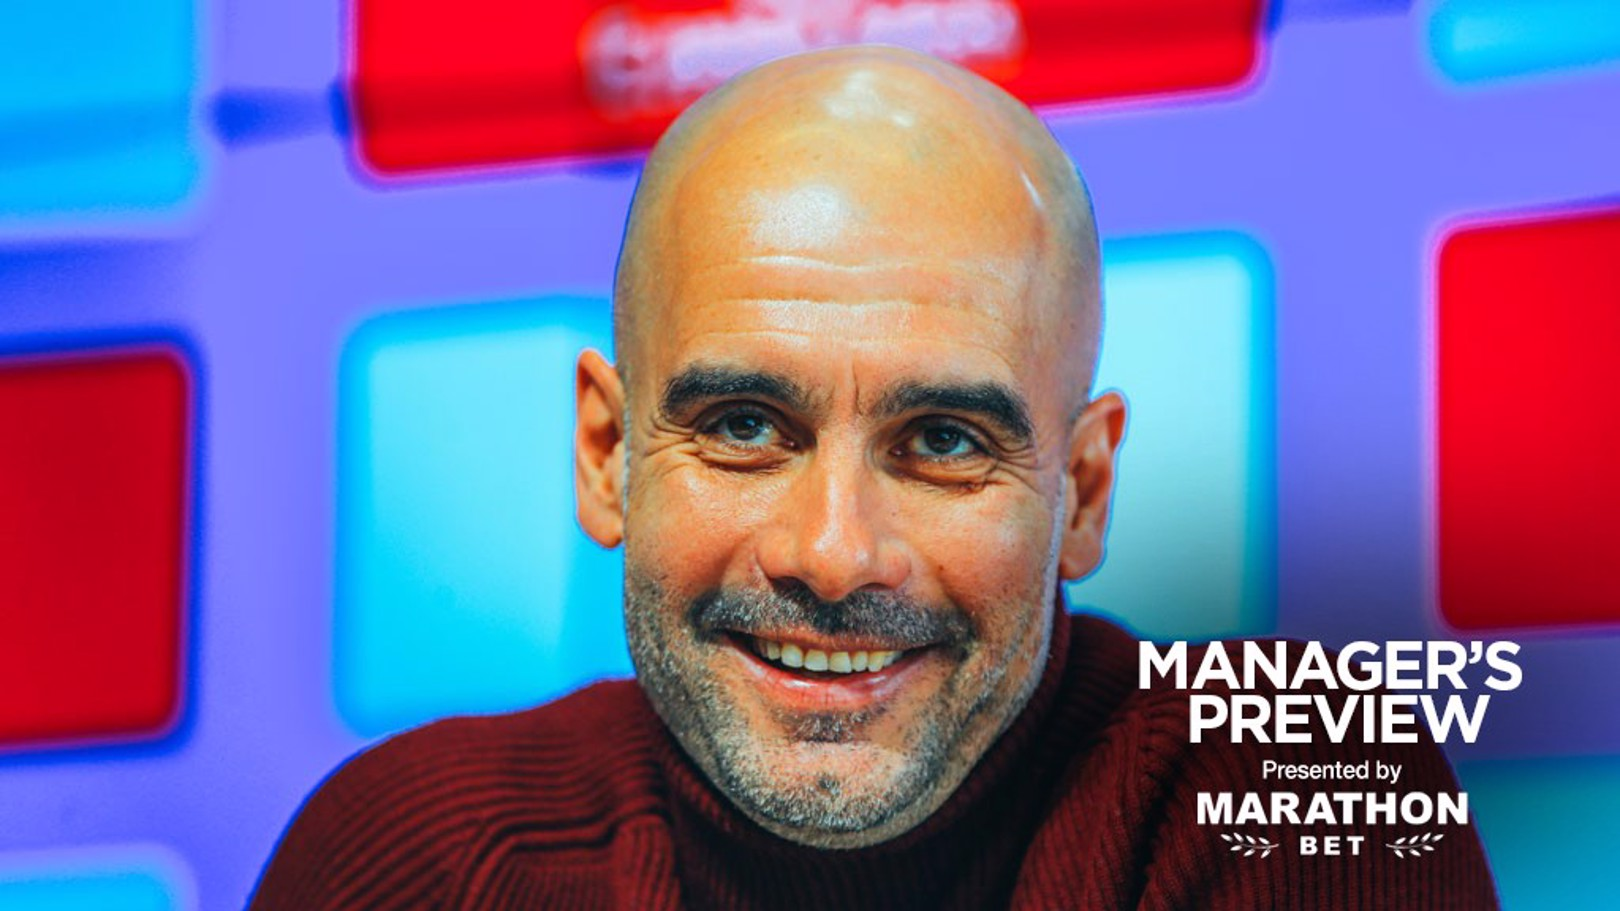 PREVIEW: Pep Guardiola speaks to the media ahead of City's FA Cup tie against Port Vale.